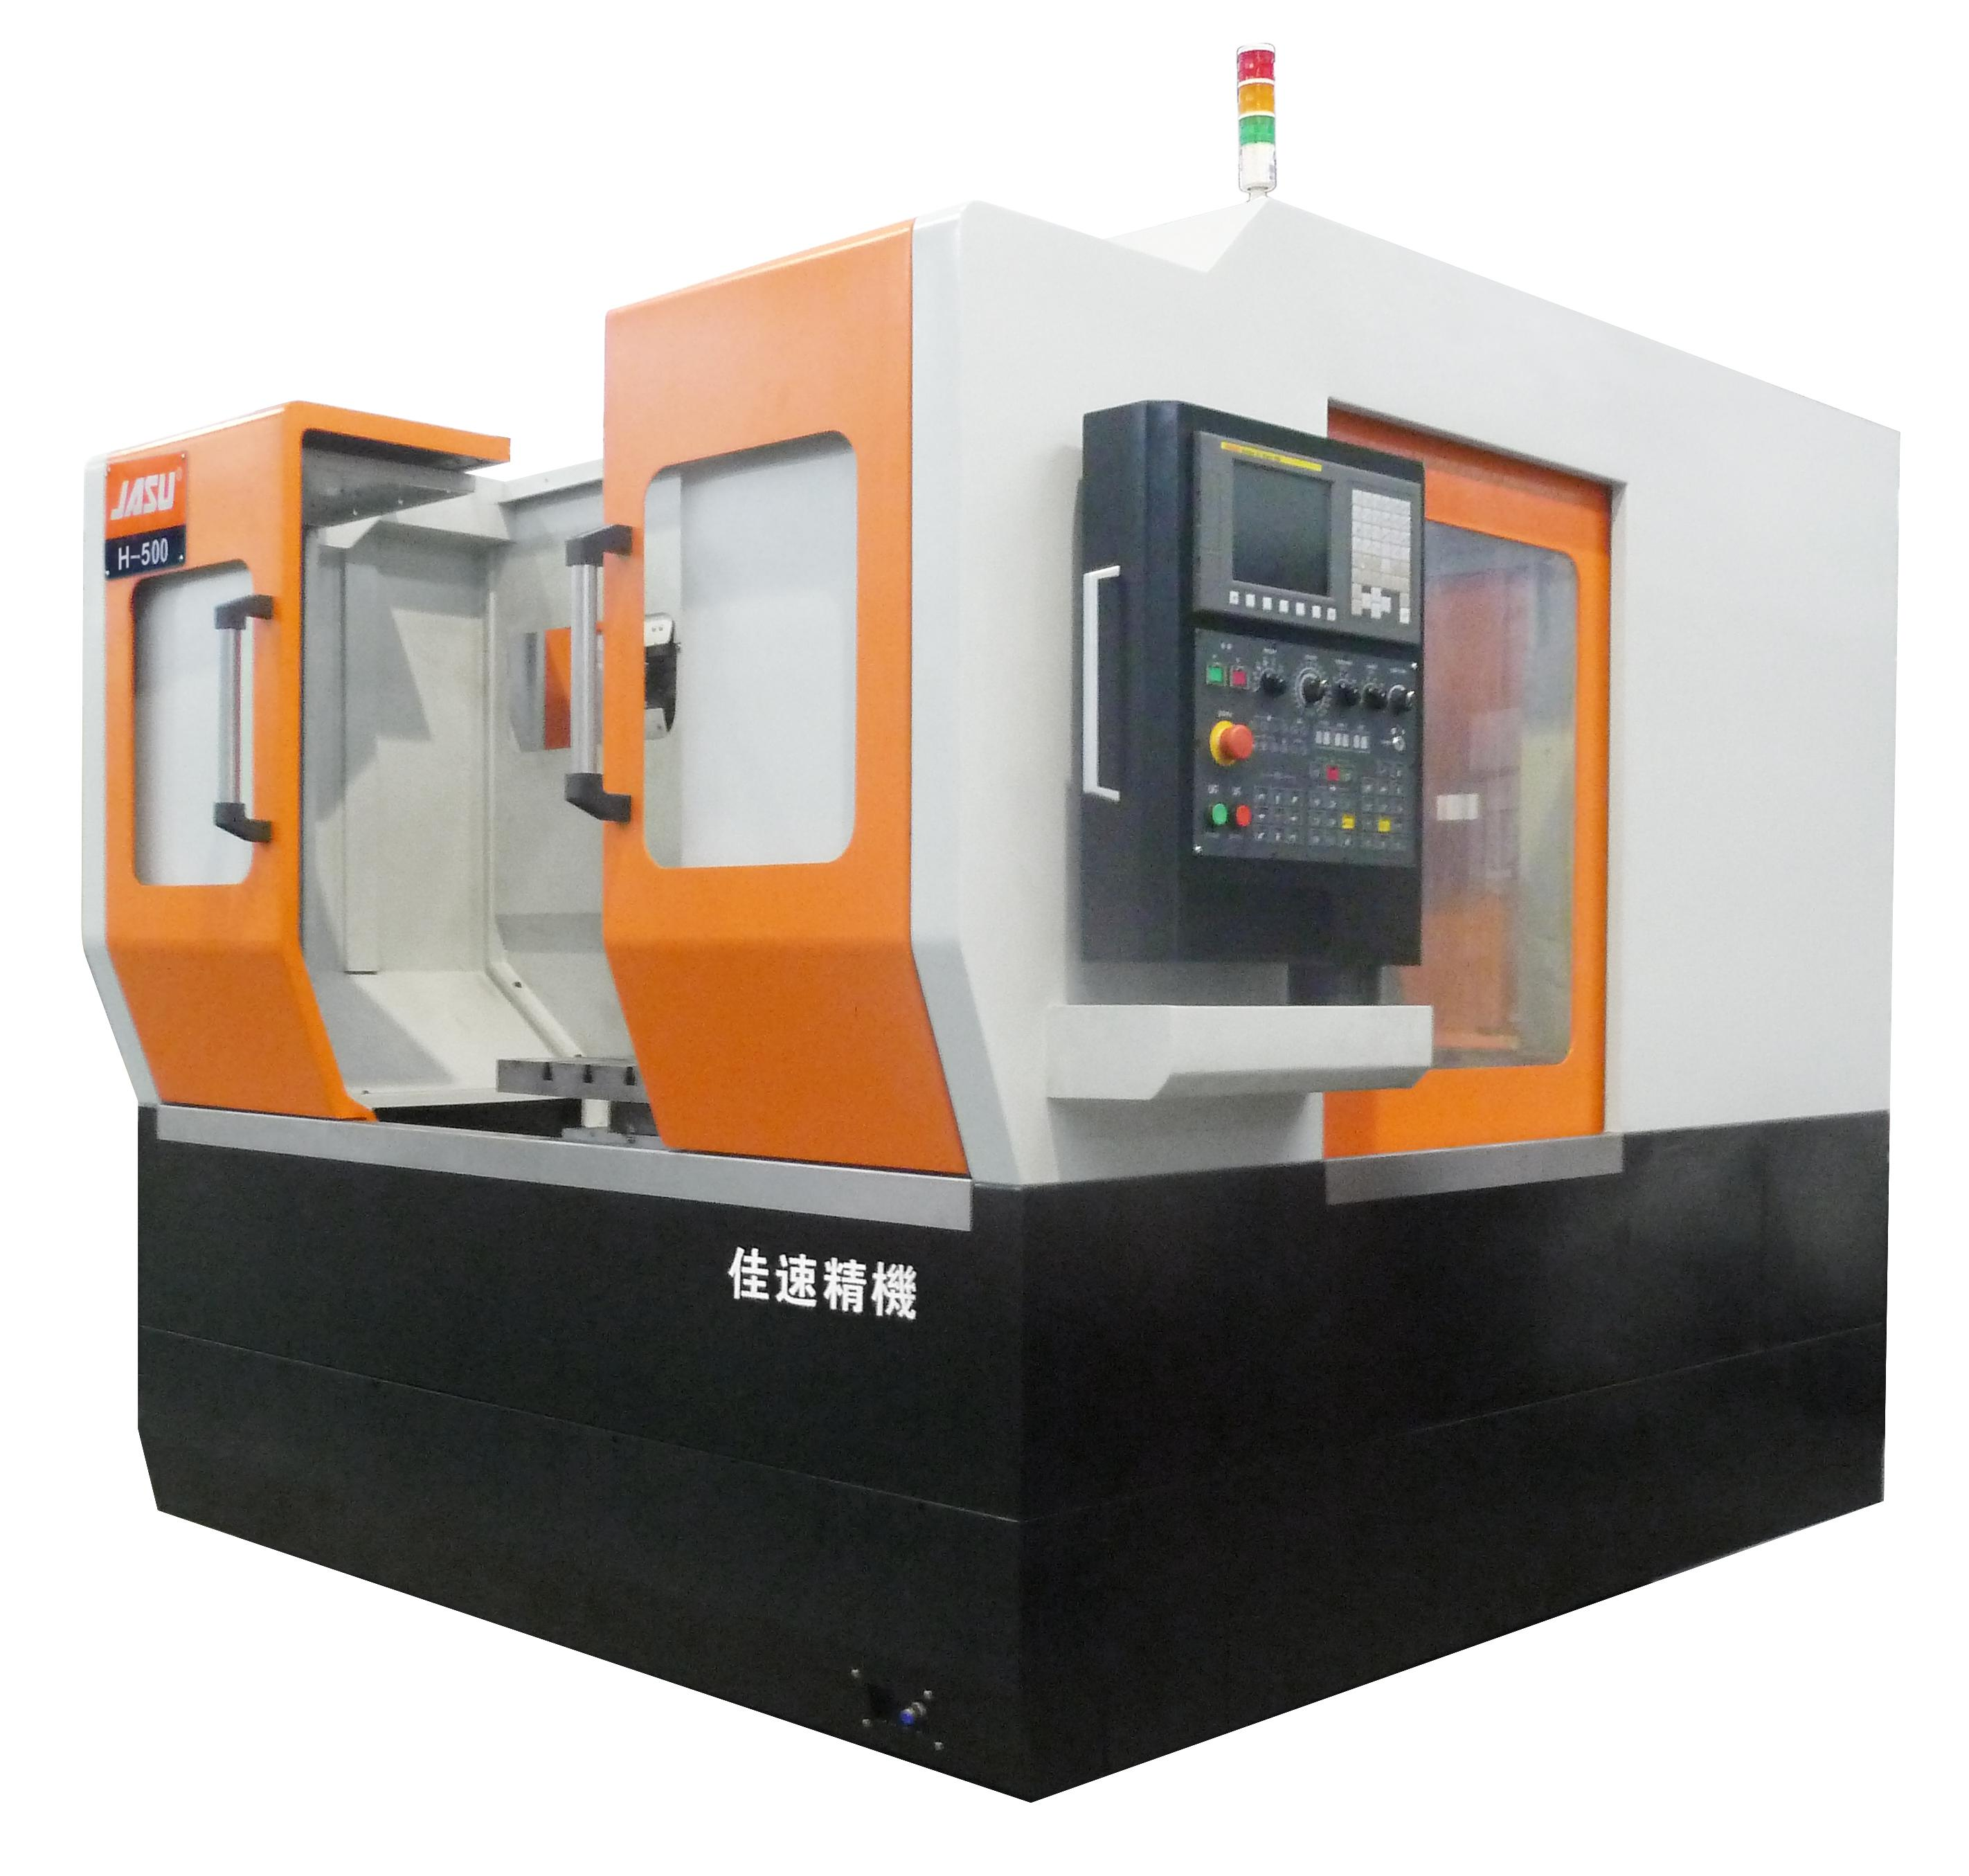 H-500 Horizontal Machining Center